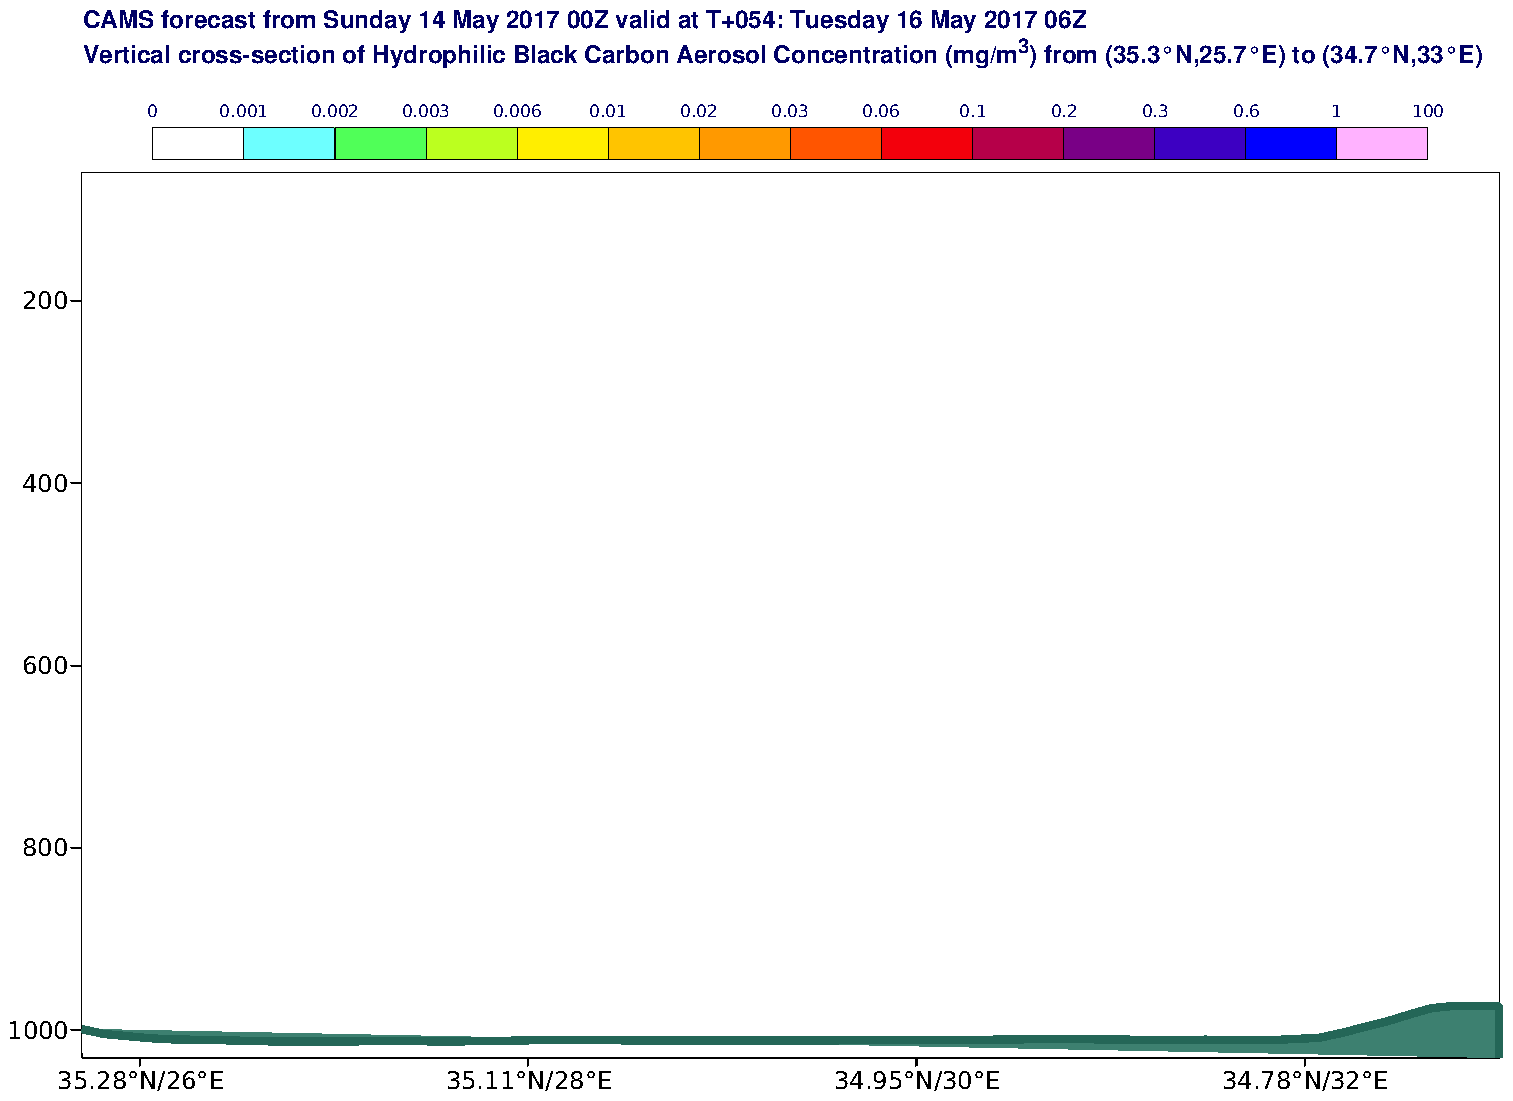 Vertical cross-section of Hydrophilic Black Carbon Aerosol Concentration (mg/m3) valid at T54 - 2017-05-16 06:00